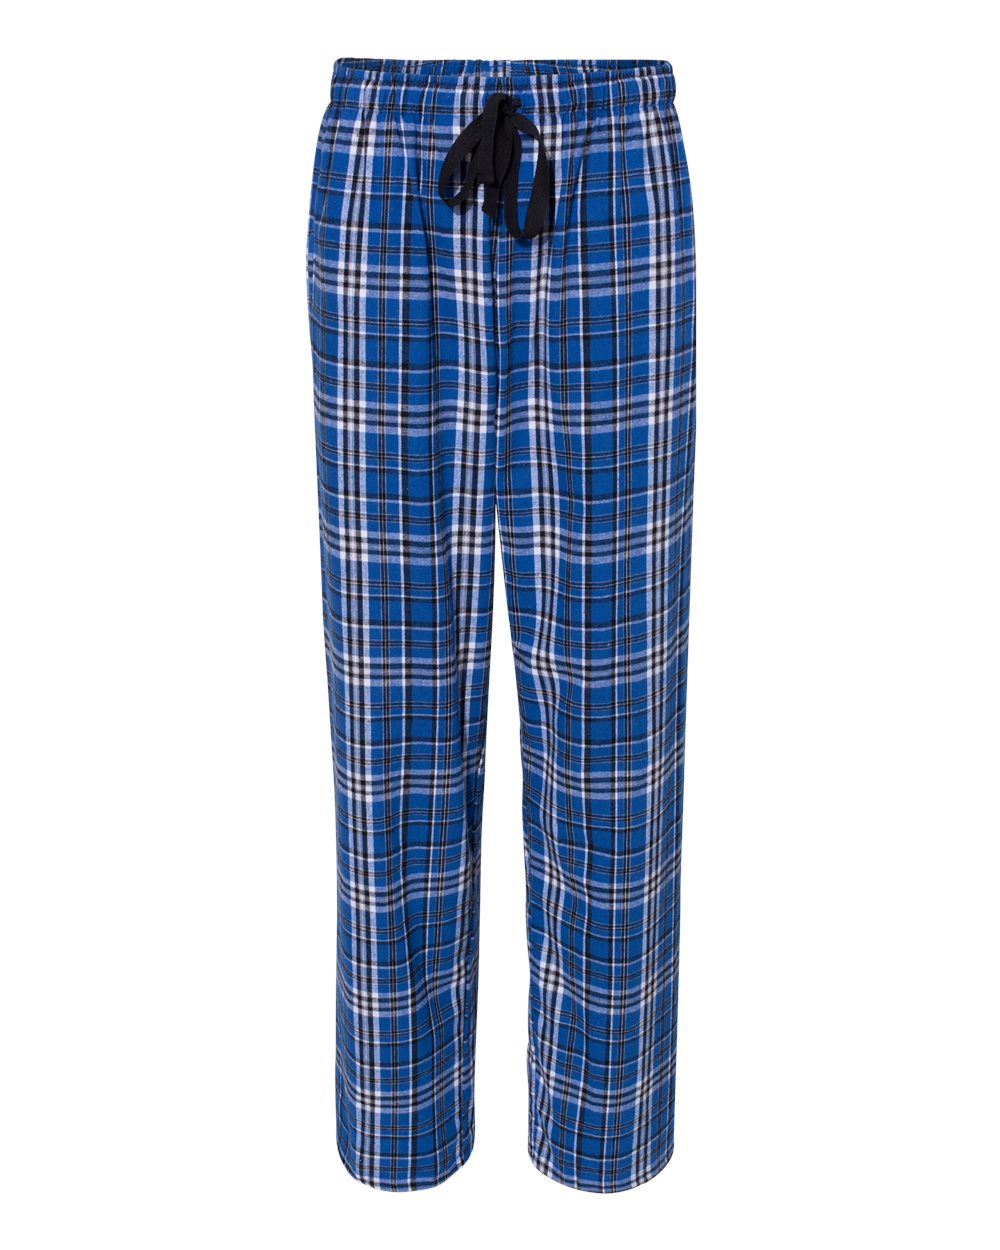 Boxercraft-Unisex-Flannel-Pants-With-Pockets-Pajama-Pants-F20-up-to-2XL thumbnail 45